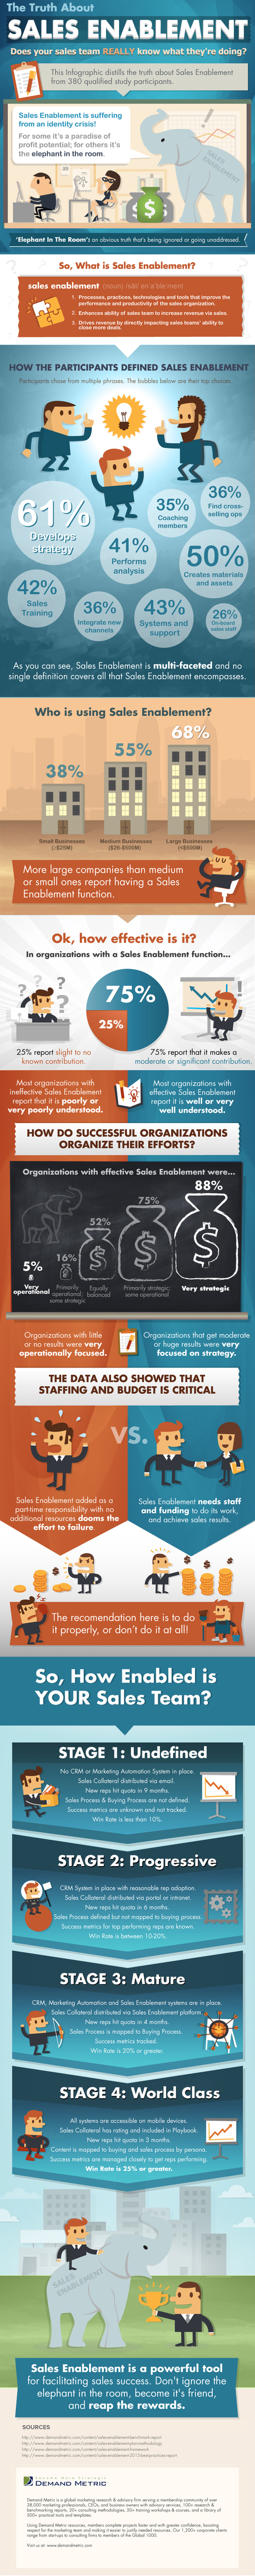 The Truth About Sales Enablement Infographic | Skura Coporation Blogs | Scoop.it